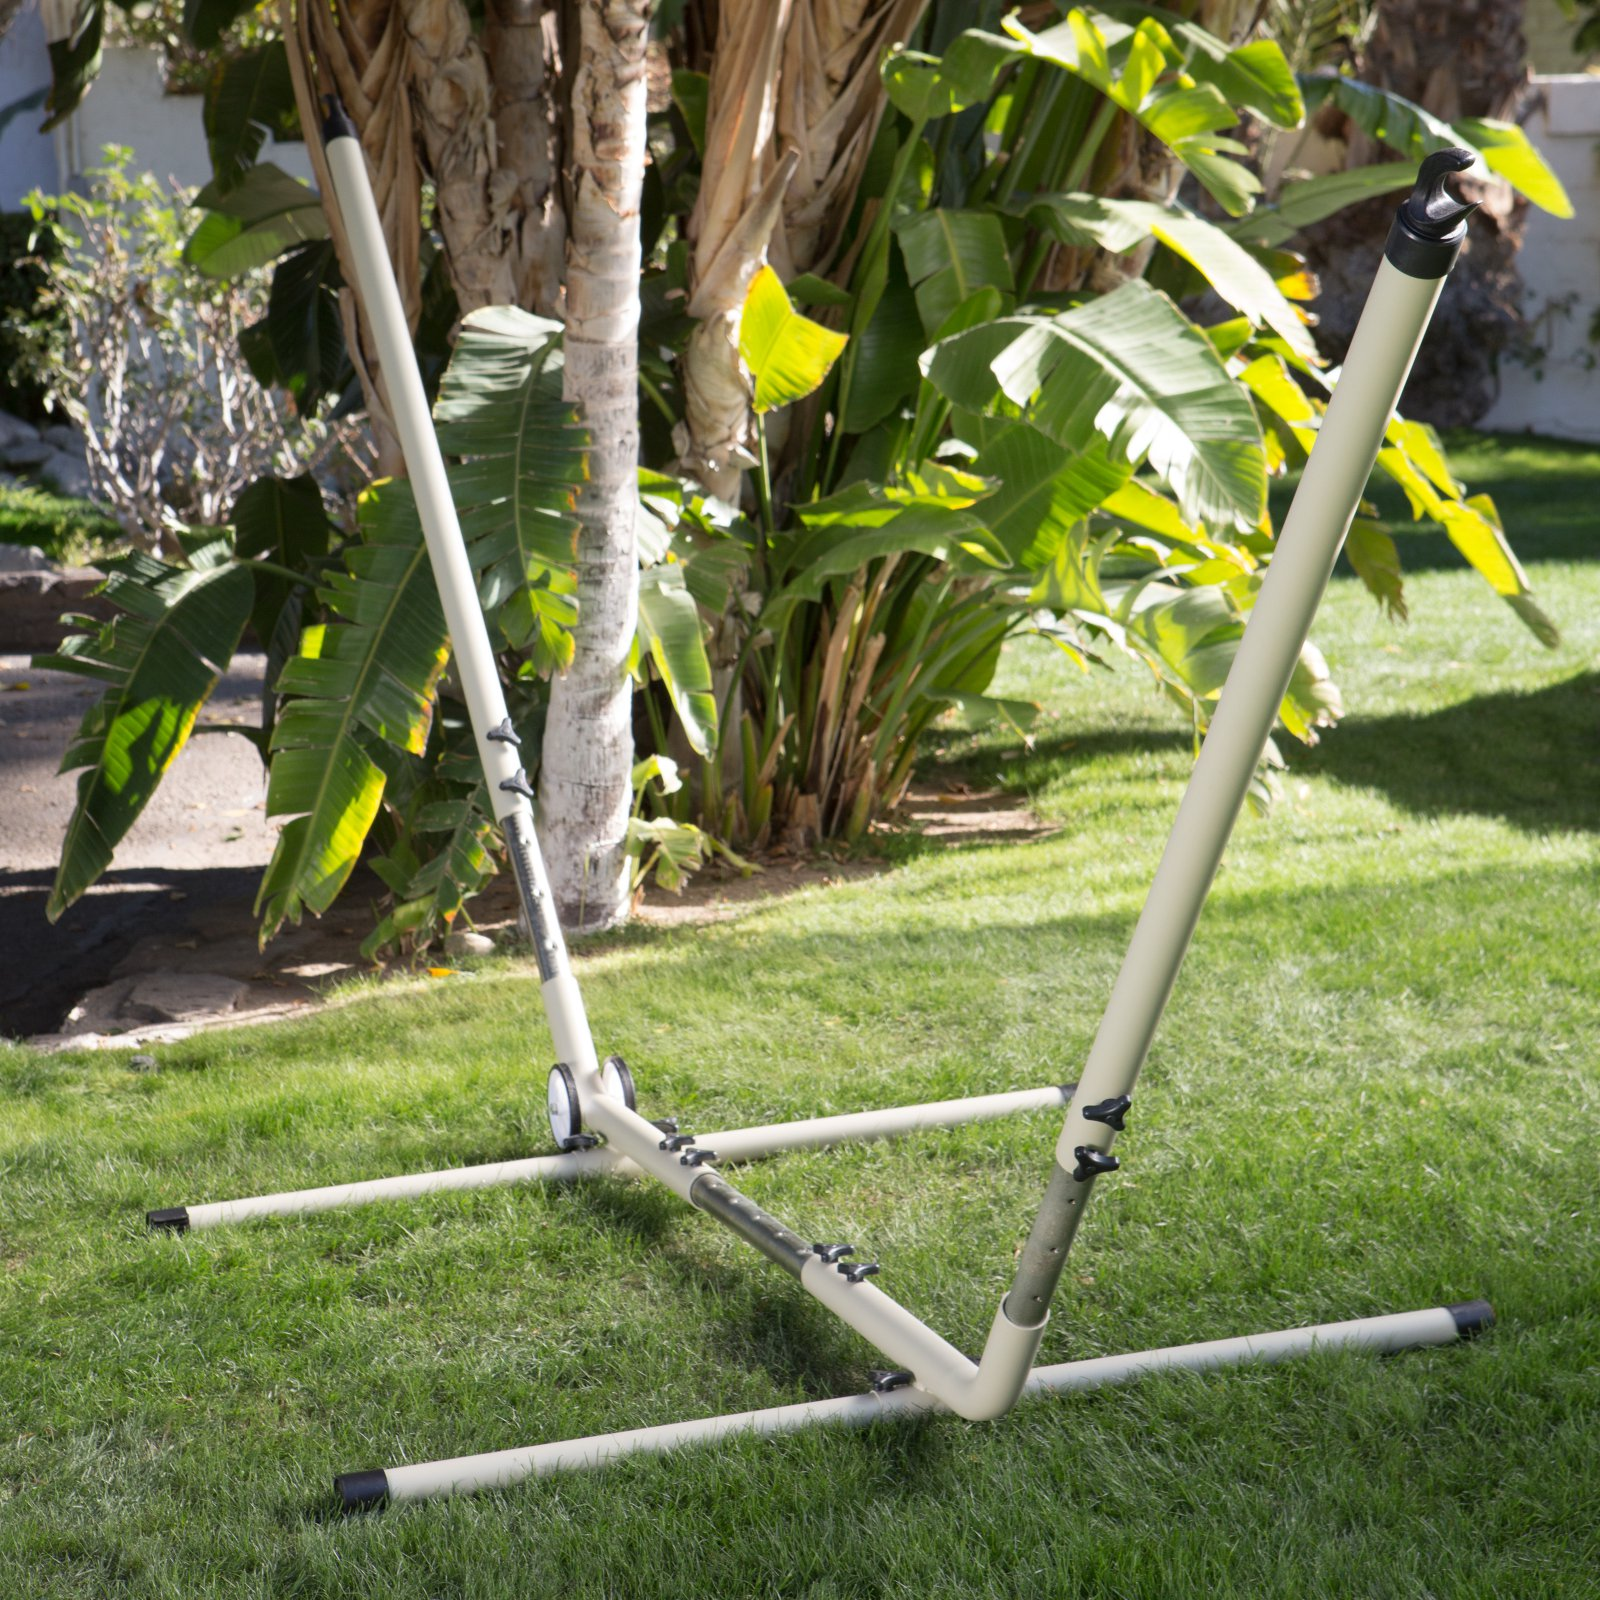 Belham Living Adjustable Hammock Stand with Wheels by DuBose Industries Inc